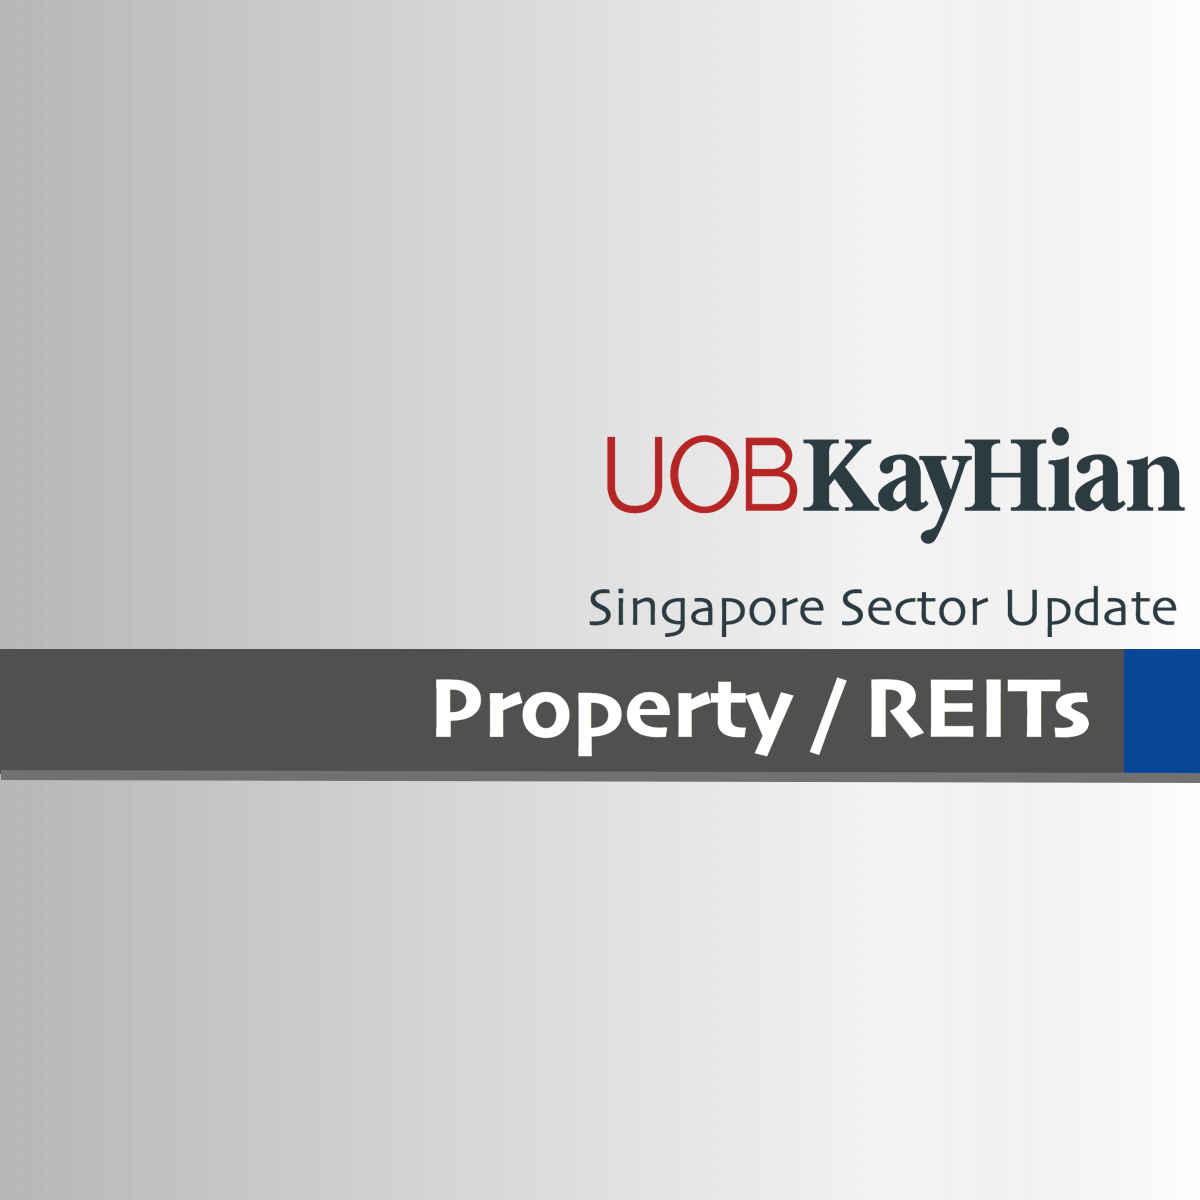 Property/REITs - Singapore - UOB Kay Hian 2016-12-13: Limited Domestic Impact From Liquidity Curbs In China